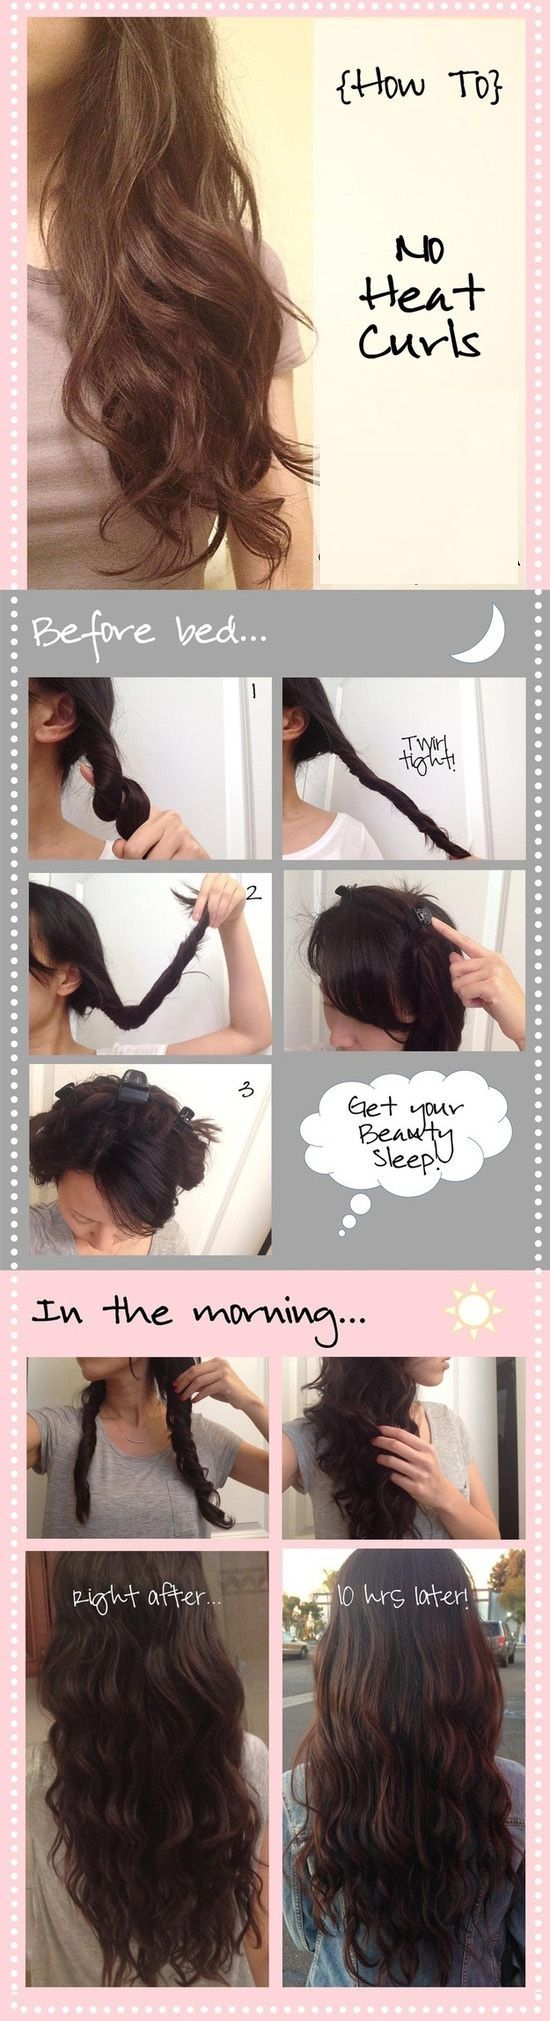 Would love to try this when my hair is a bit longer!